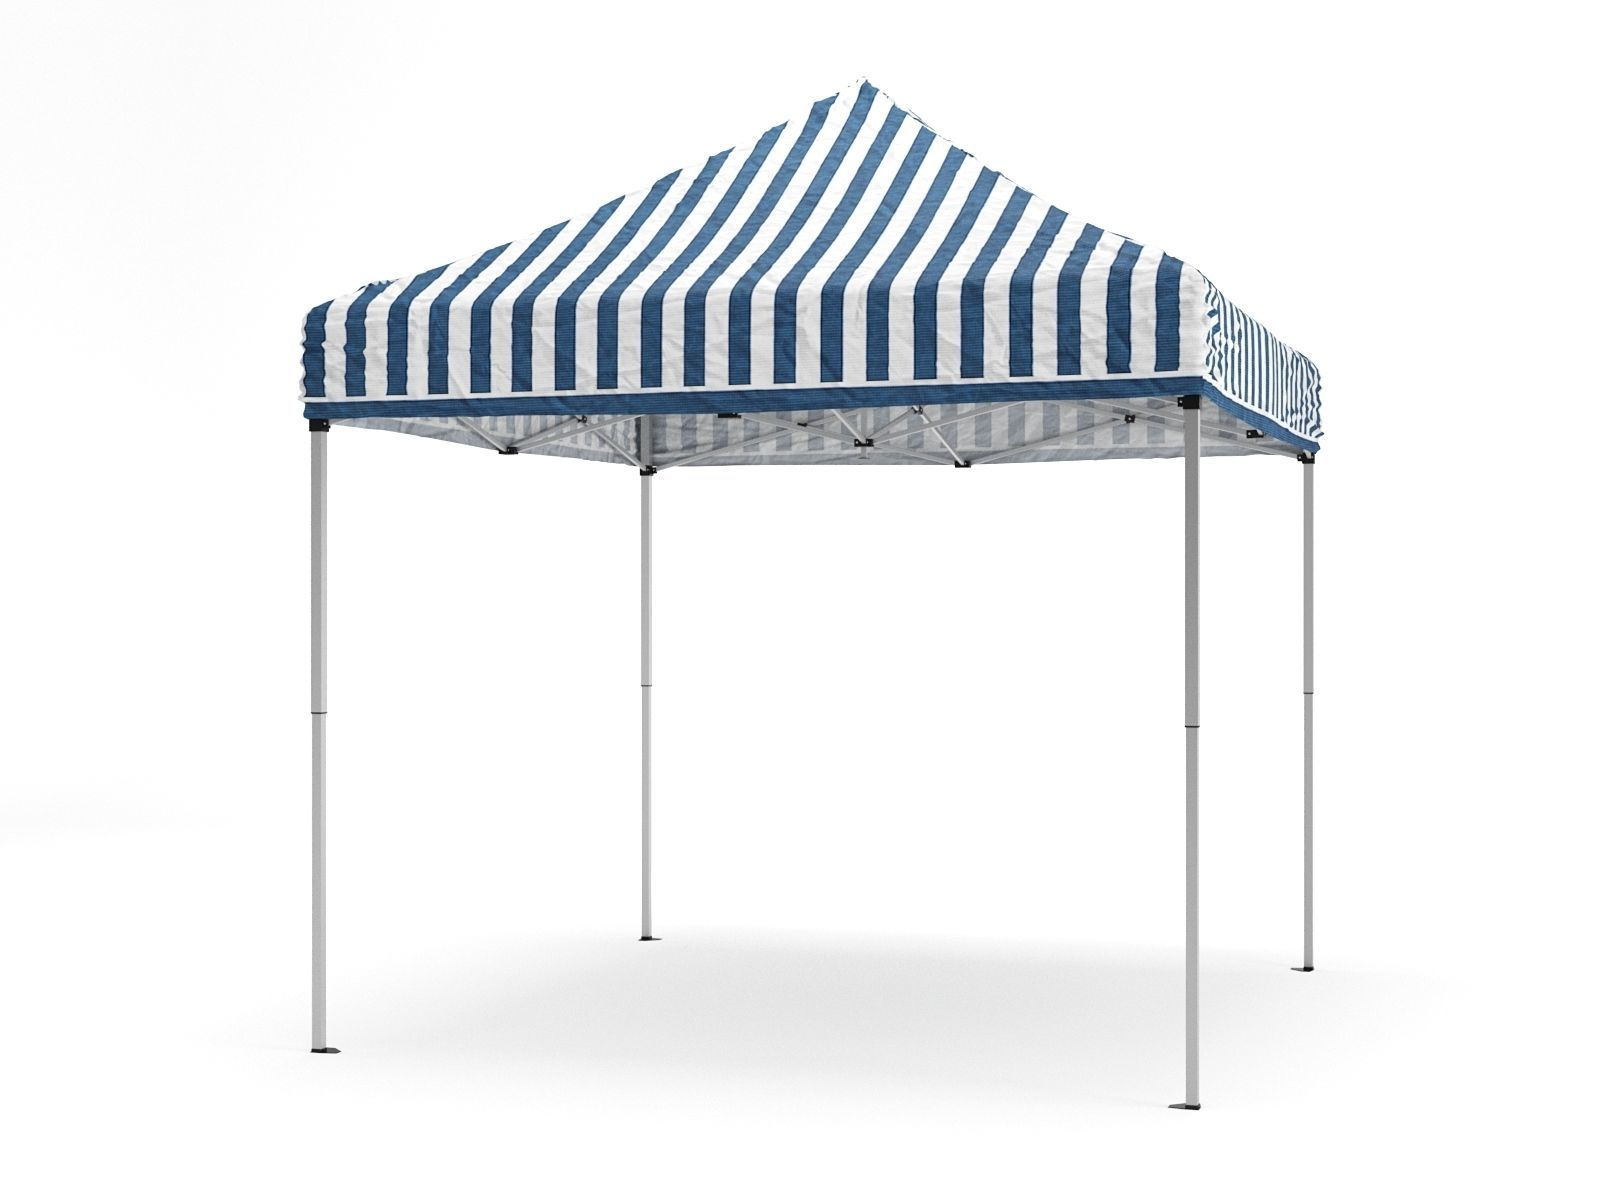 Gazebo Commercial Event Canopy Tent